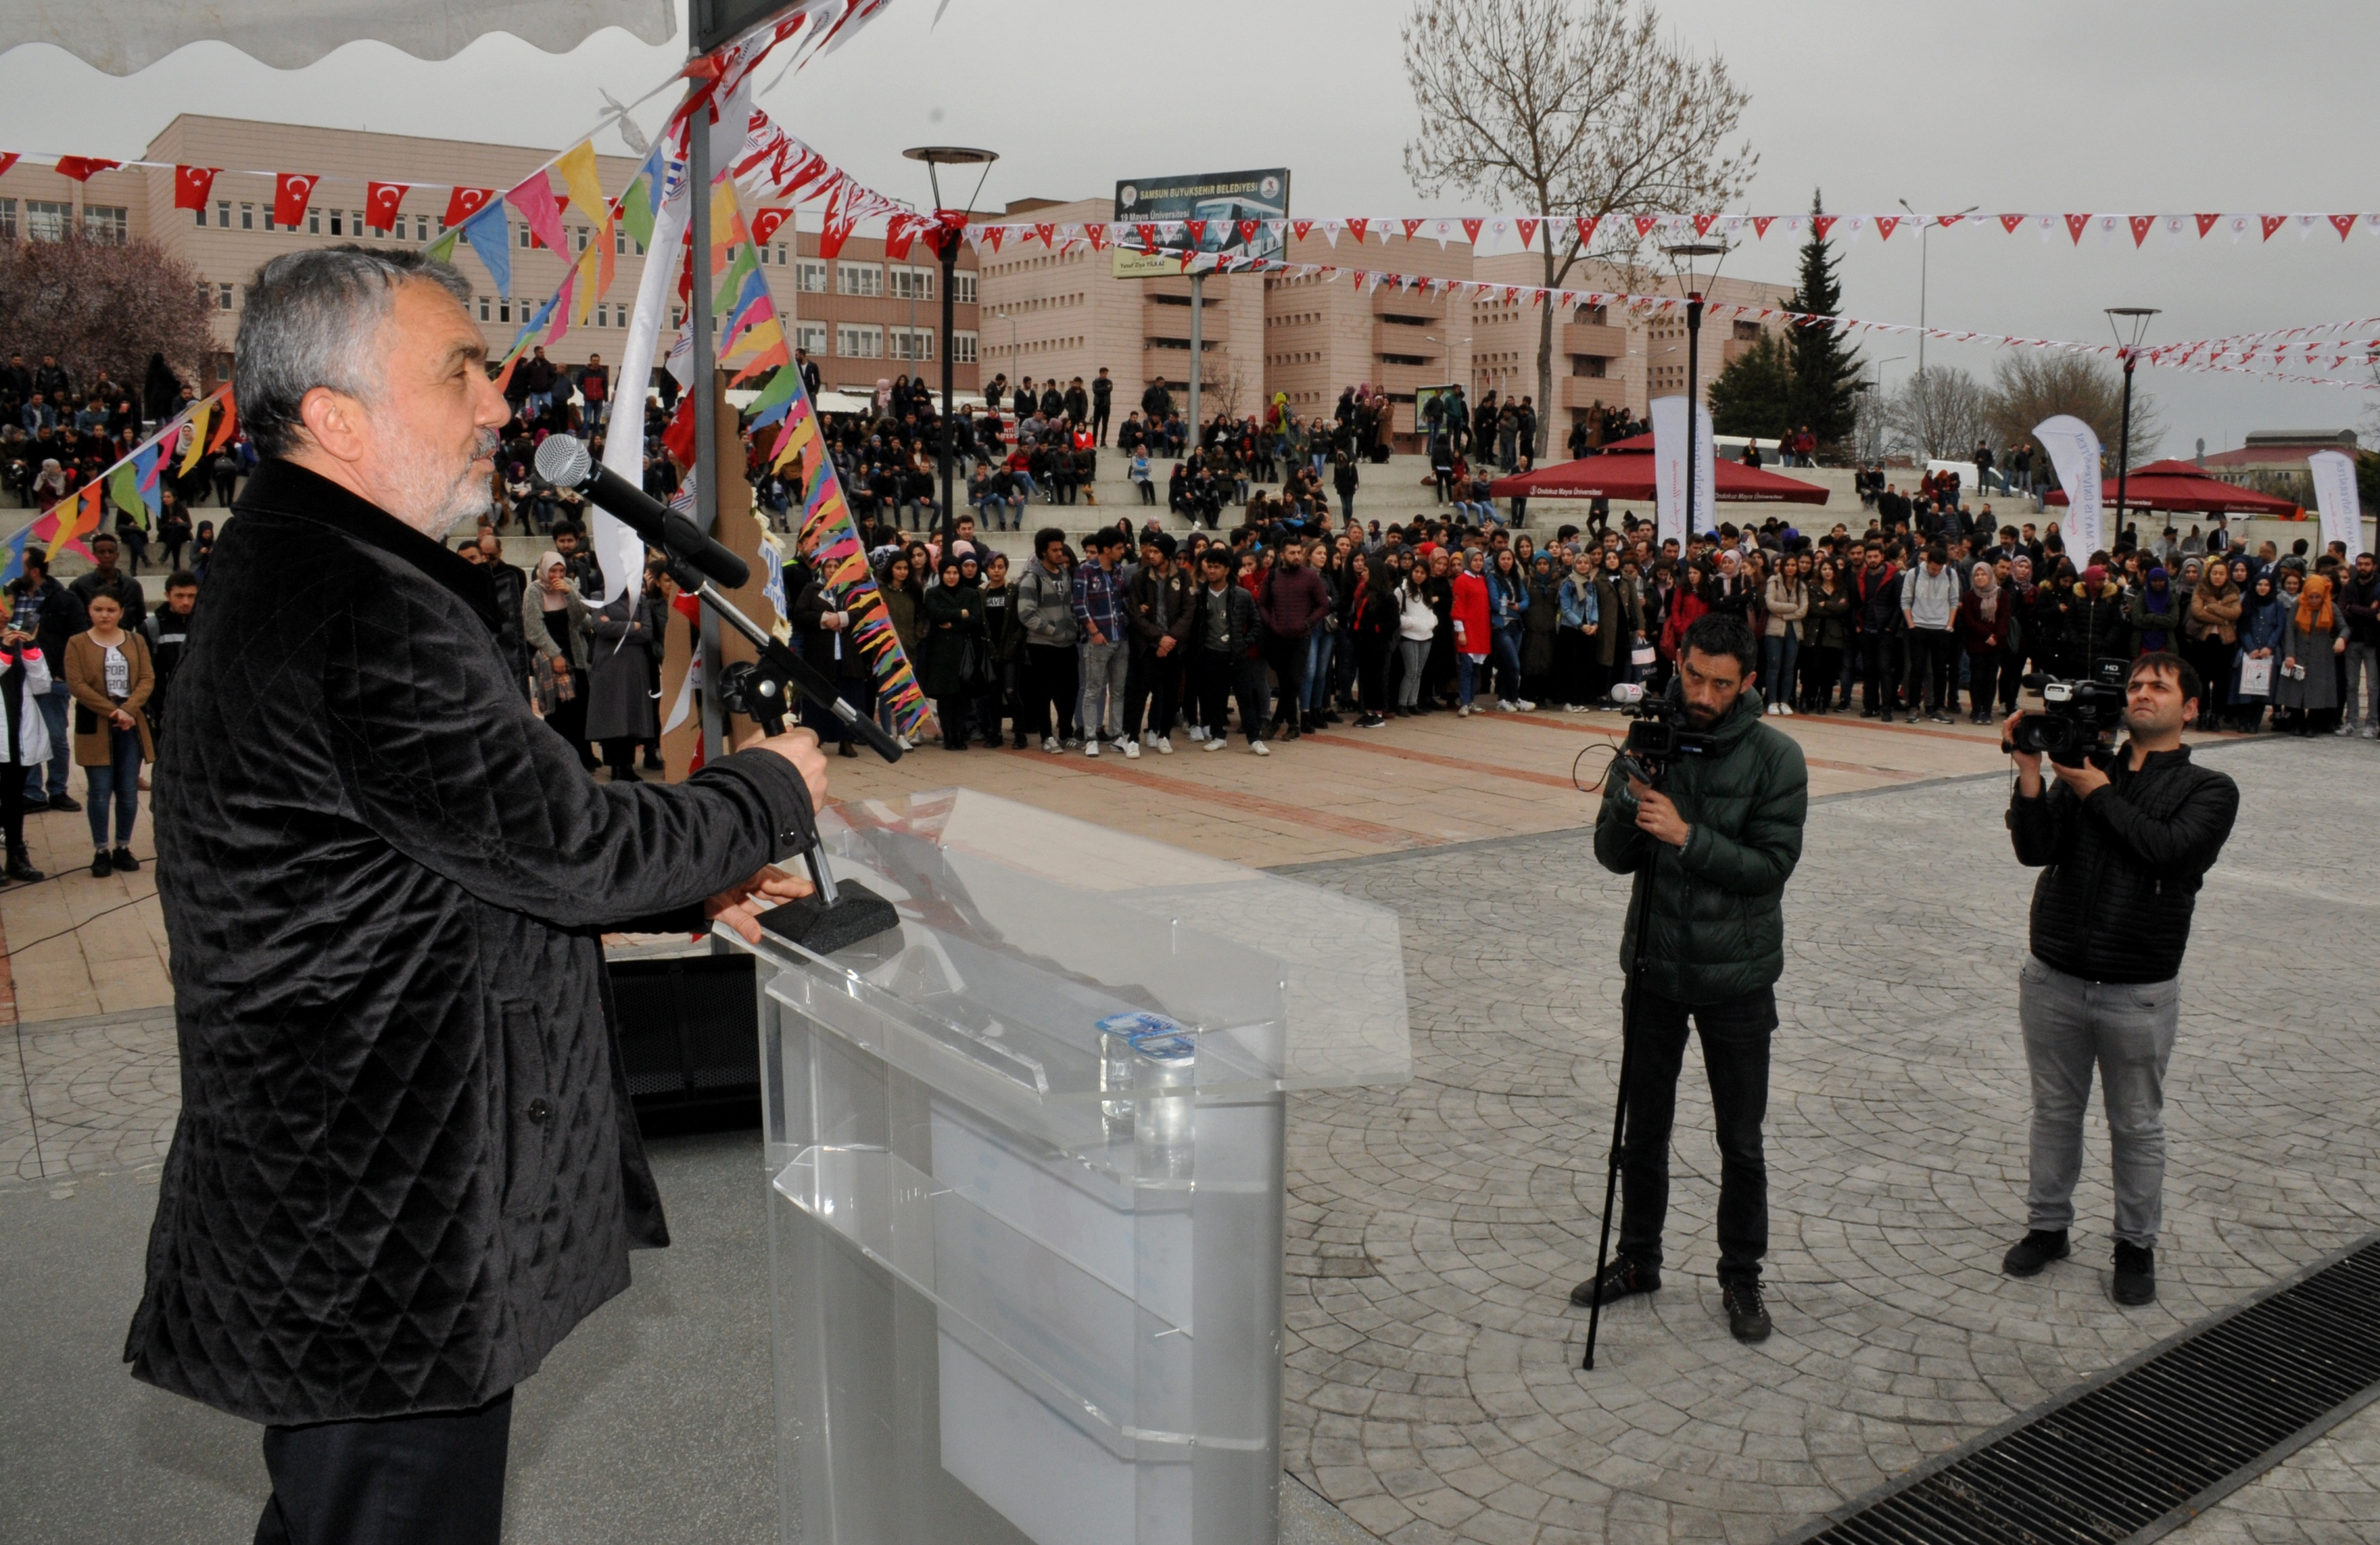 http://www.omu.edu.tr/sites/default/files/files/omu_family_enthusiastically_celebrated_newroz/dsc_0207.jpg